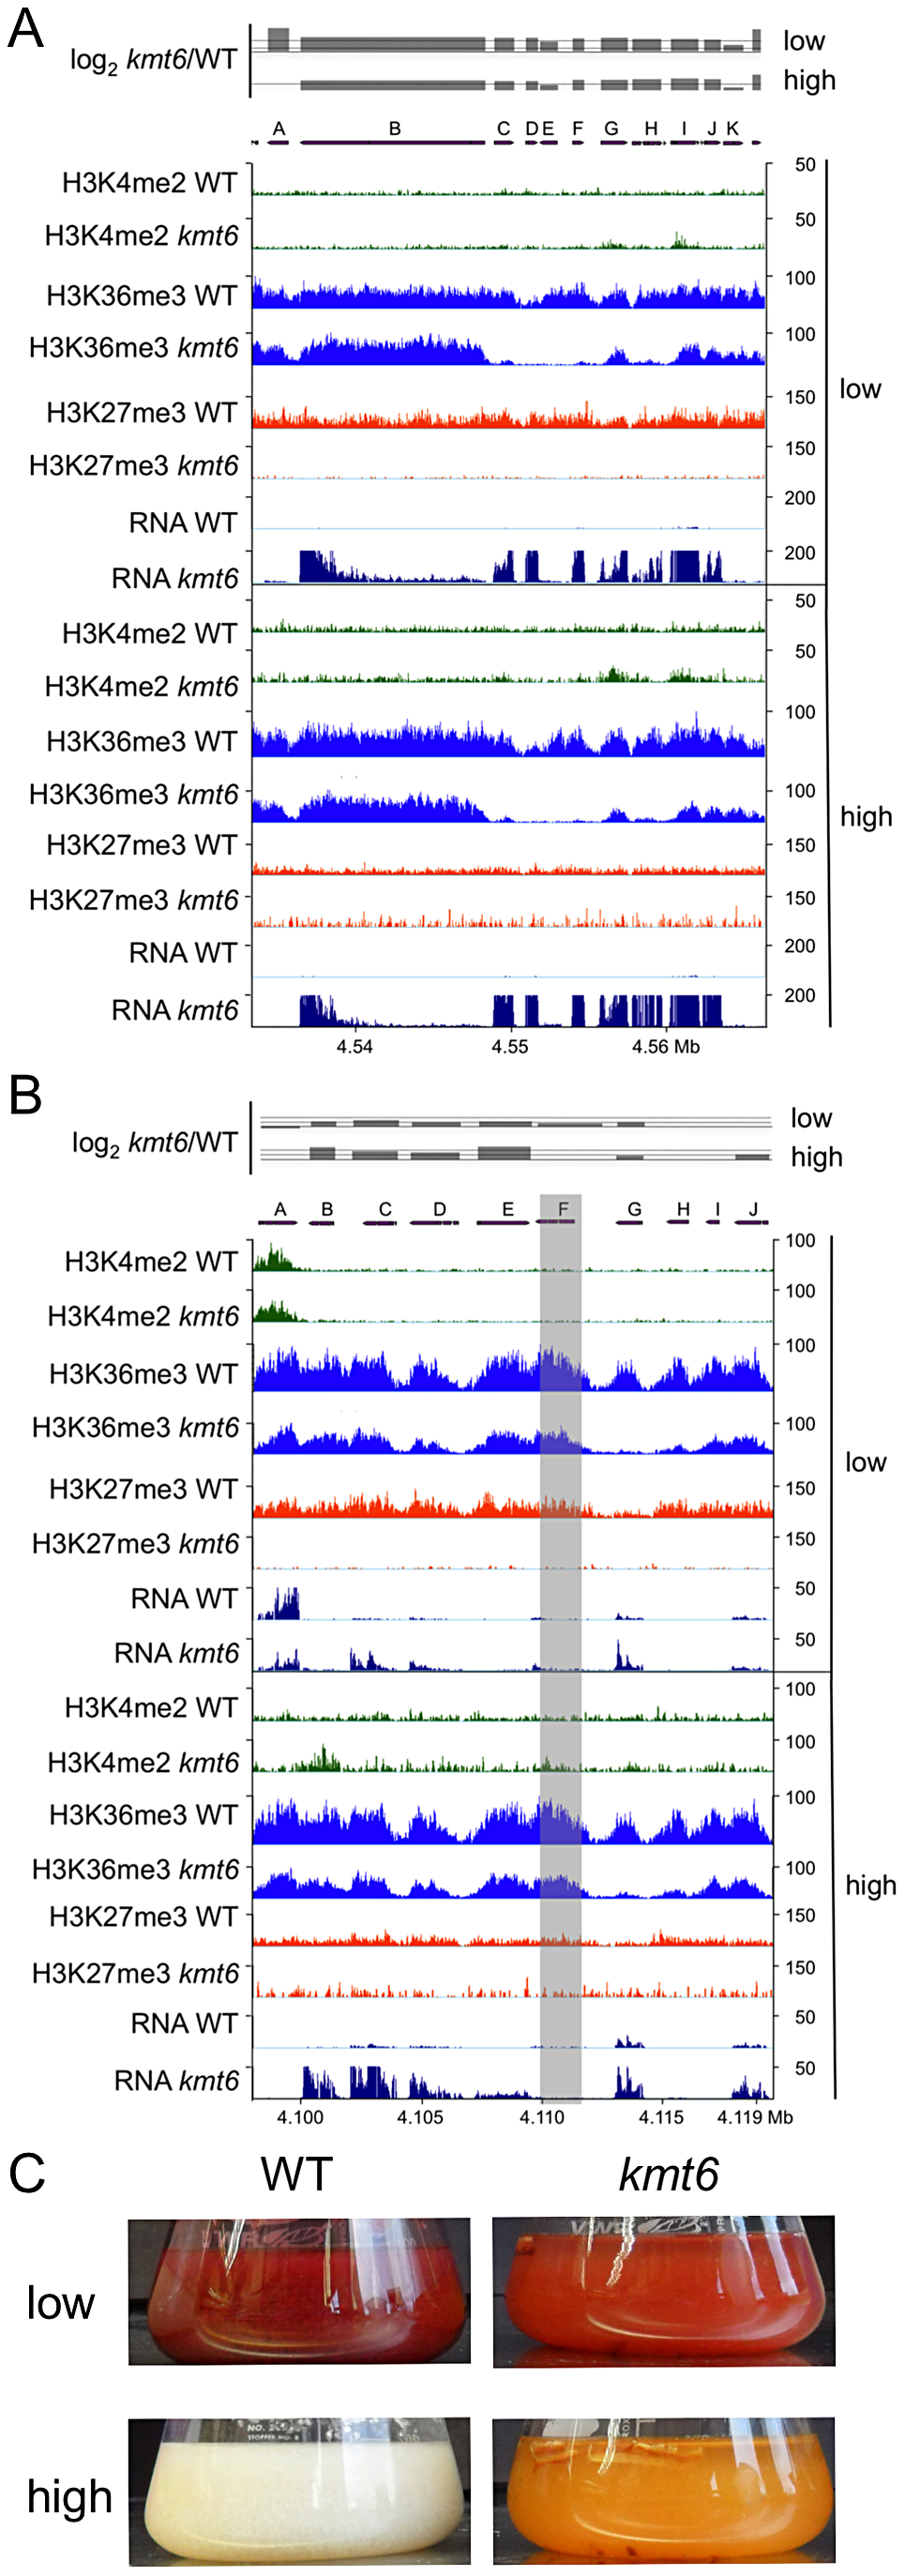 Specific gene clusters are upregulated in <i>kmt6</i>.